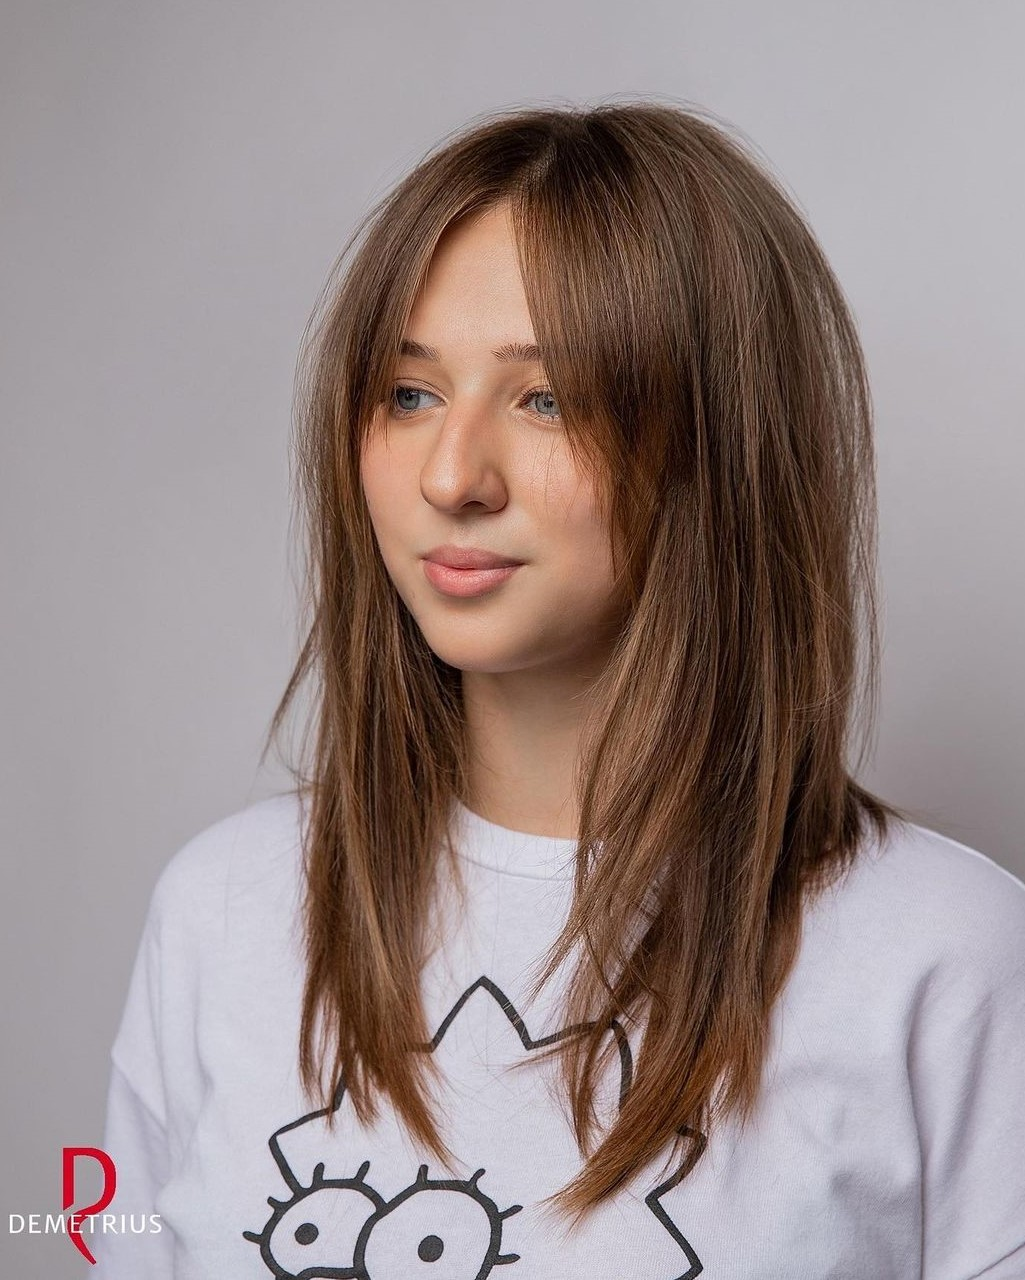 Round Face Haircut with Bangs Parted in the Middle